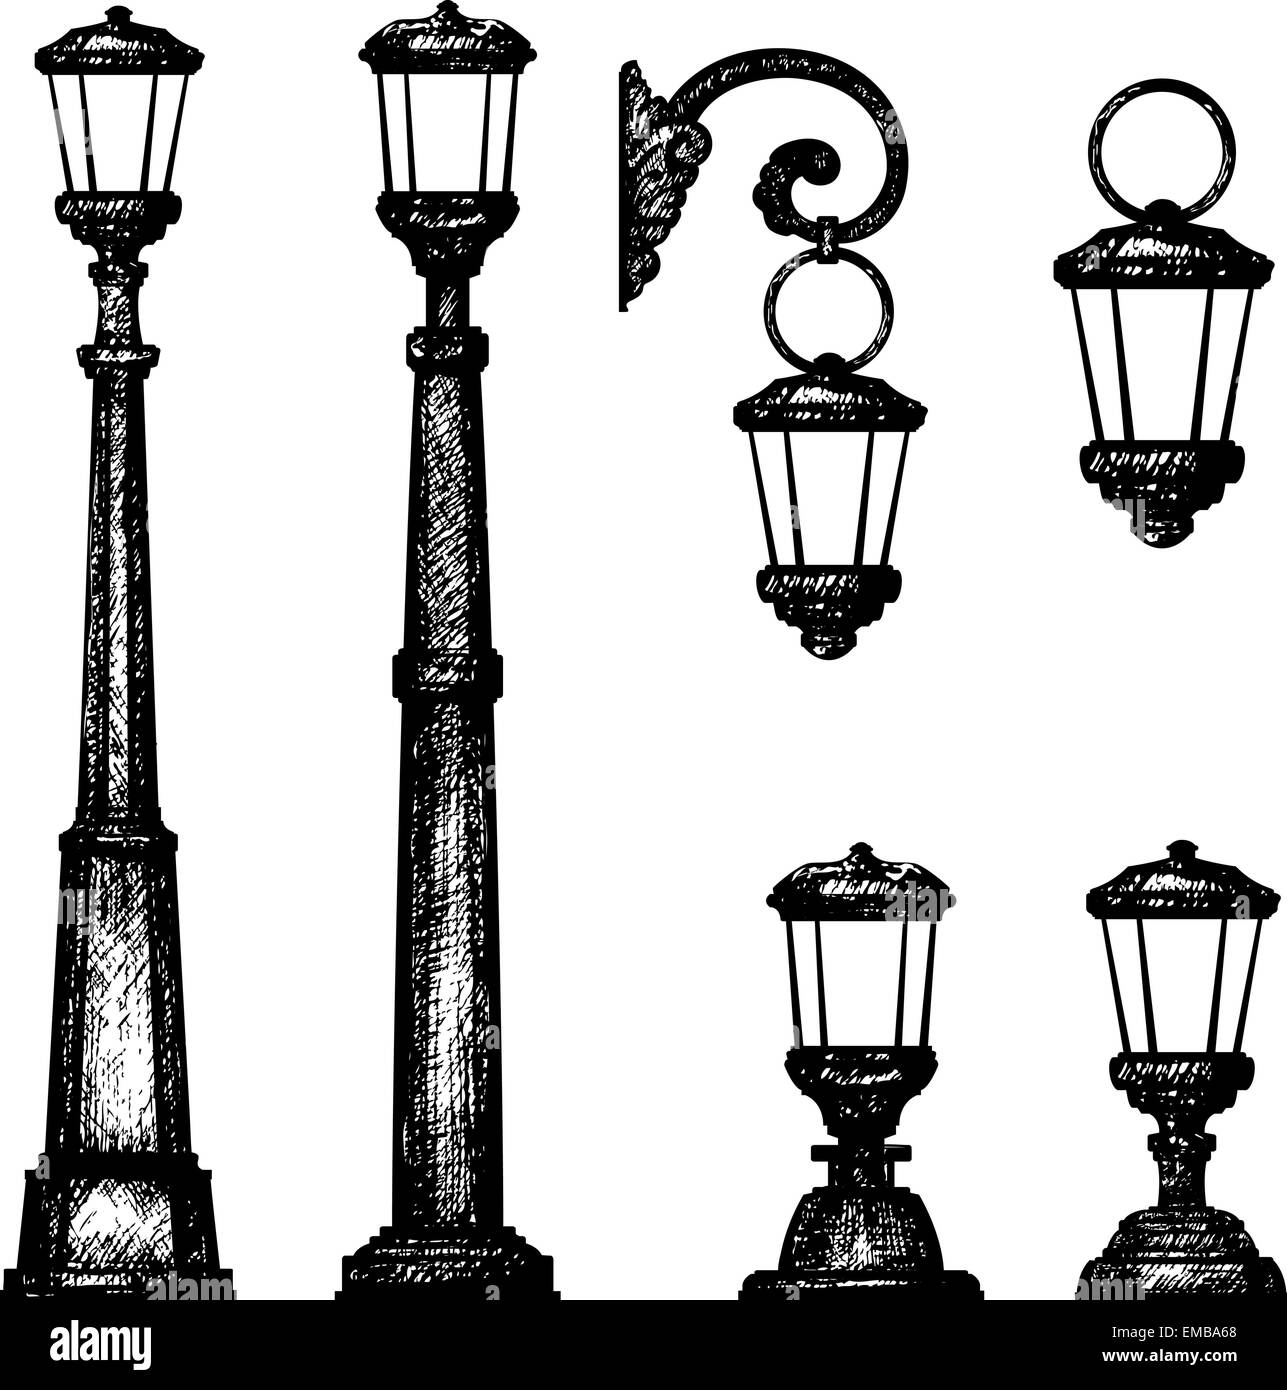 Sketch of street light, vector drawing Stock Vector